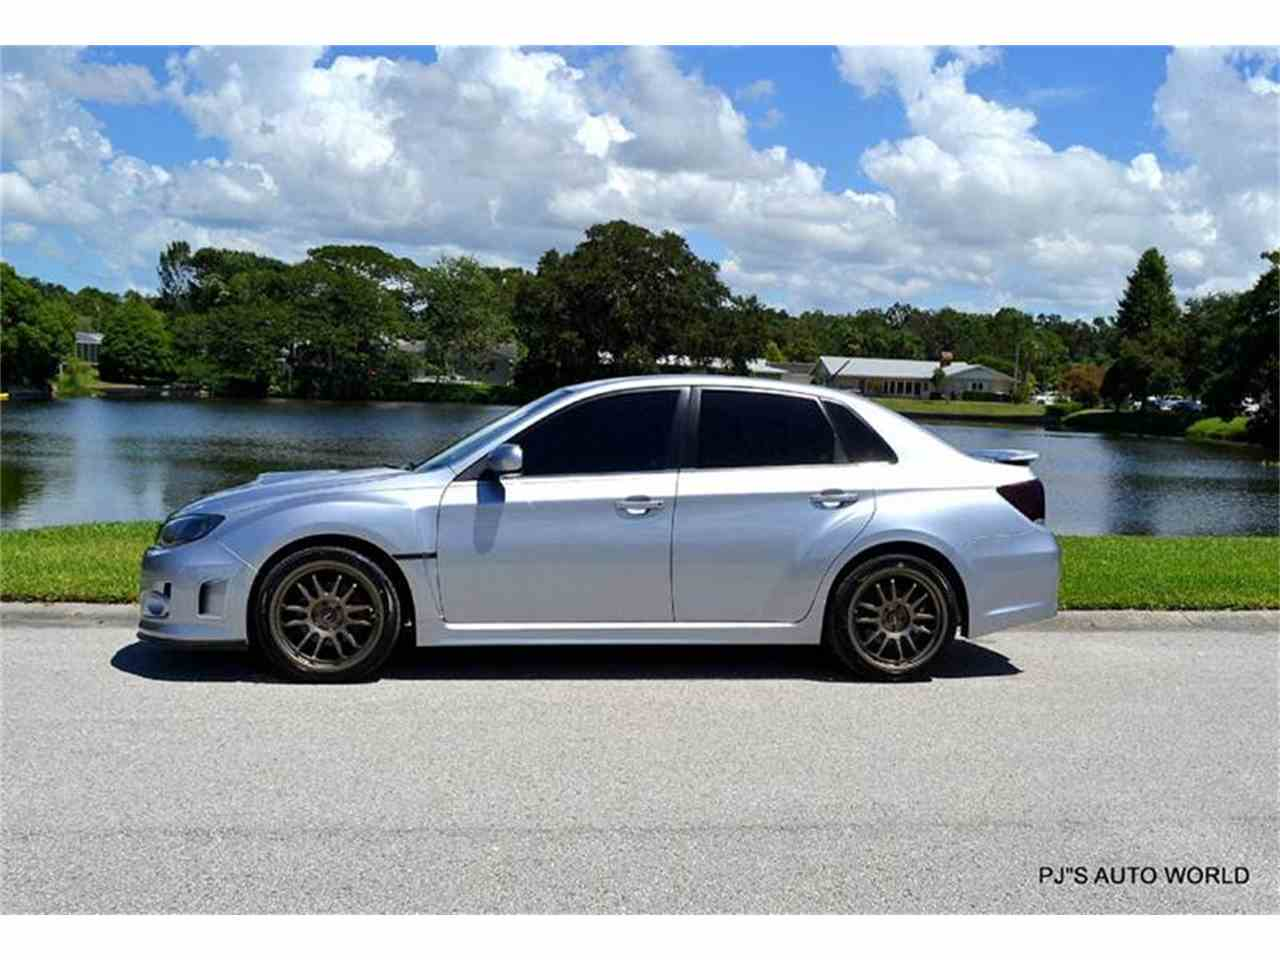 2013 Subaru Impreza for Sale - CC-895414